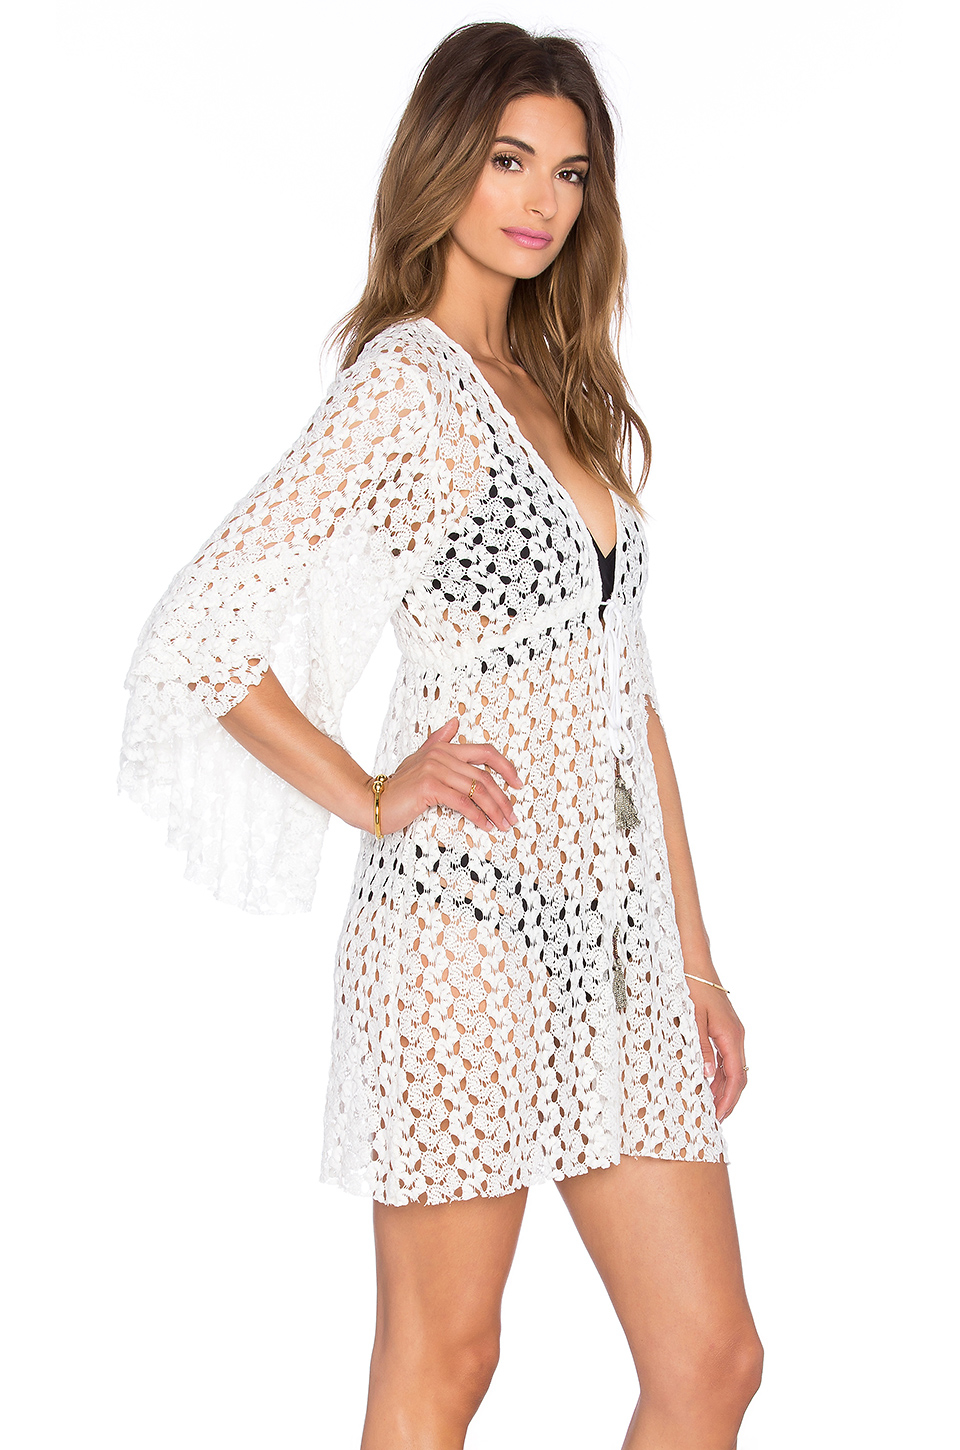 sleeve dress shirts with design red and white polka dot halter dress ...